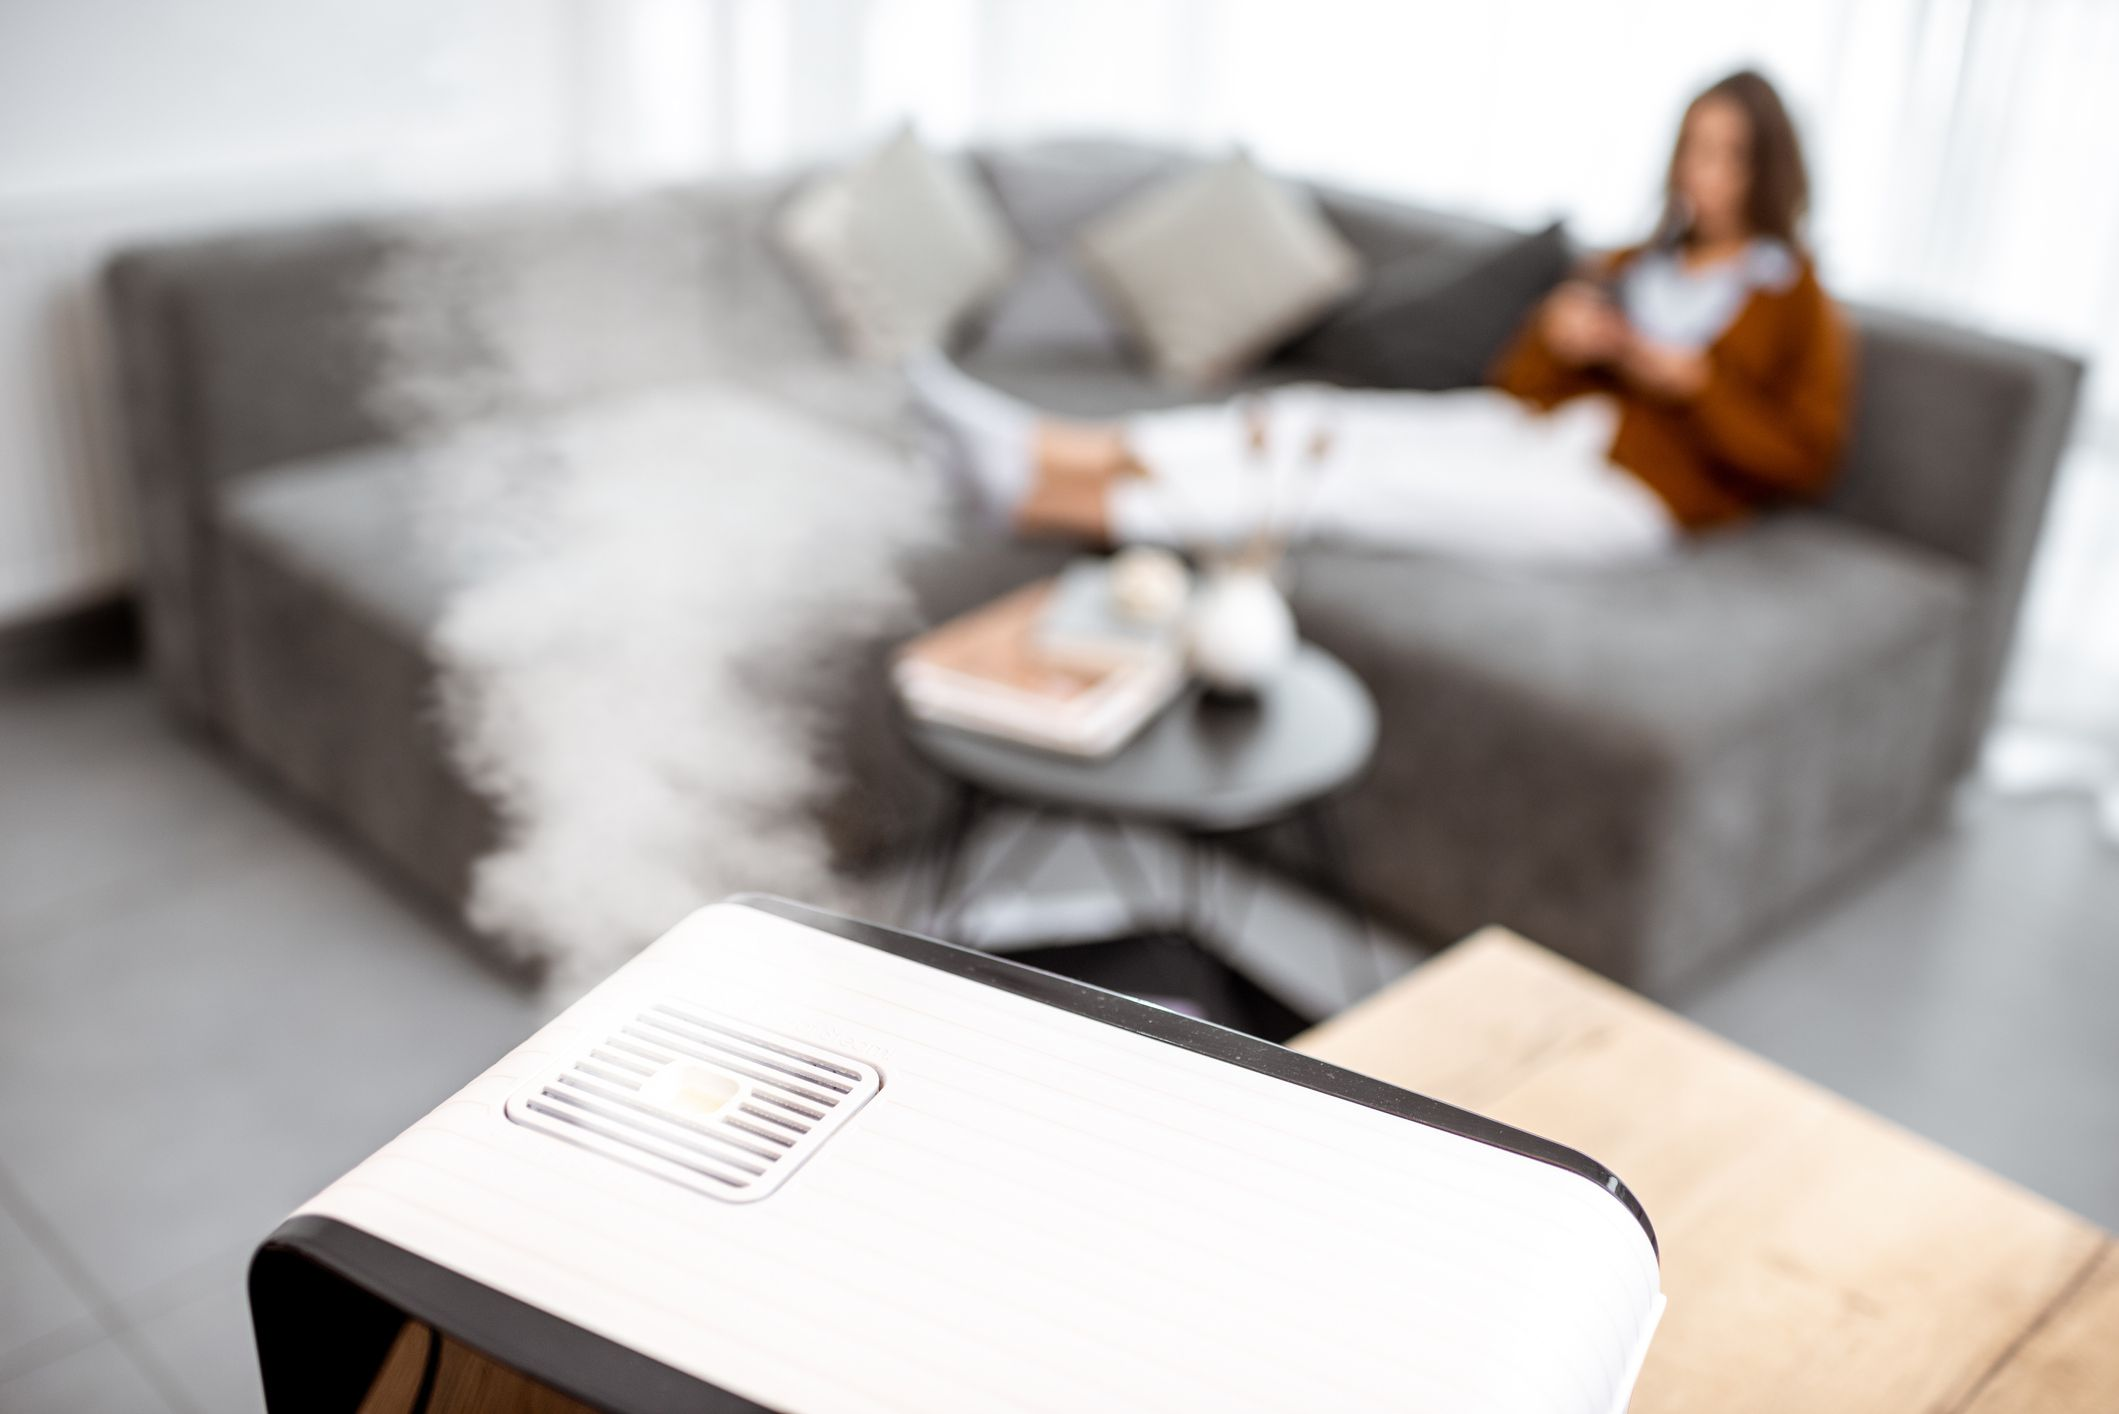 A woman sits on the couch in front of a humidifier.